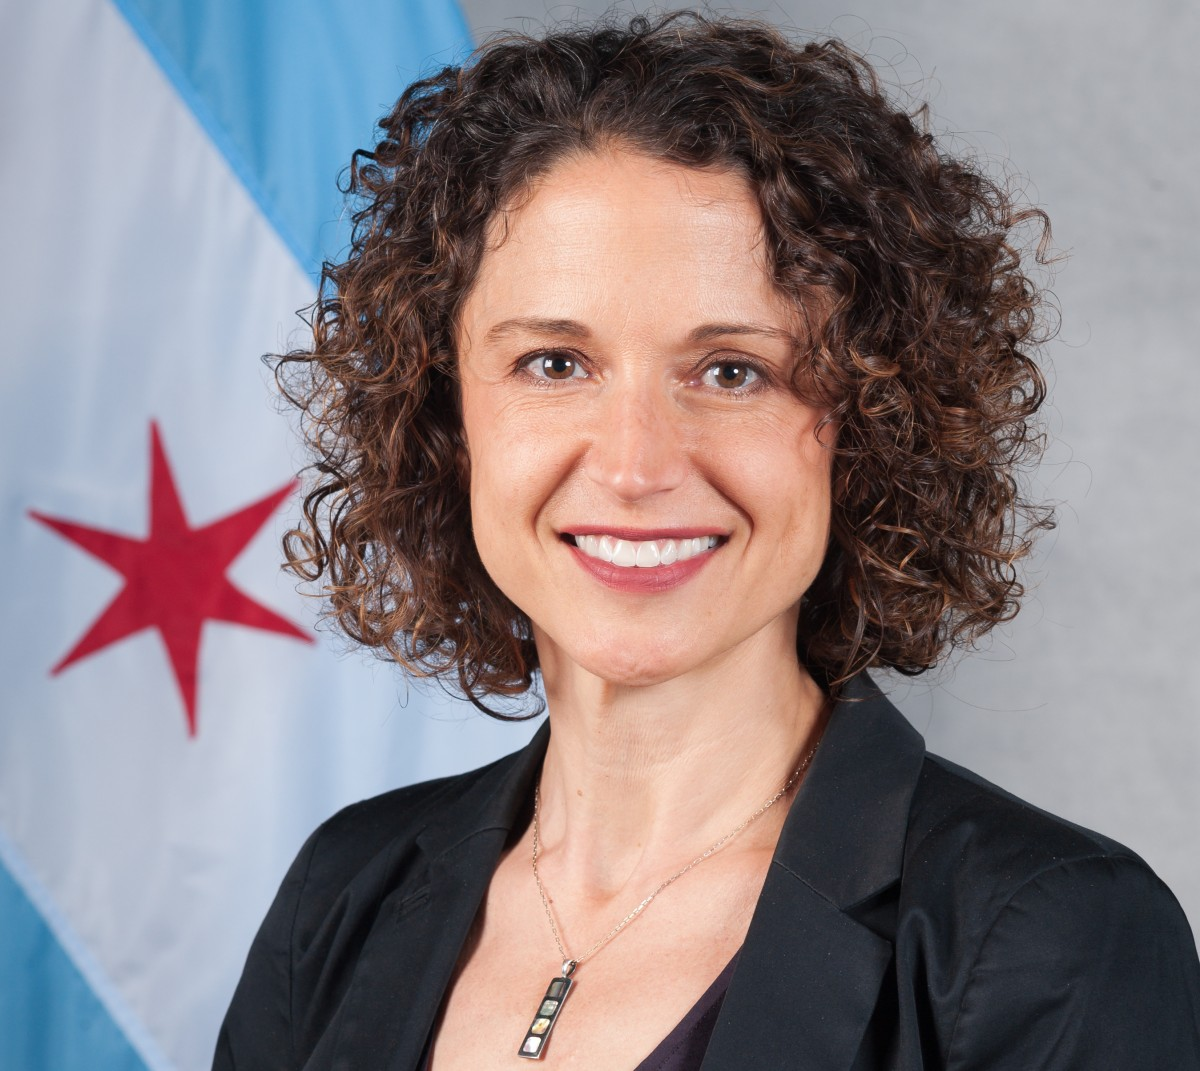 Chicago's New Housing Commissioner Brings a Racial Equity Lens to Planning and Policy